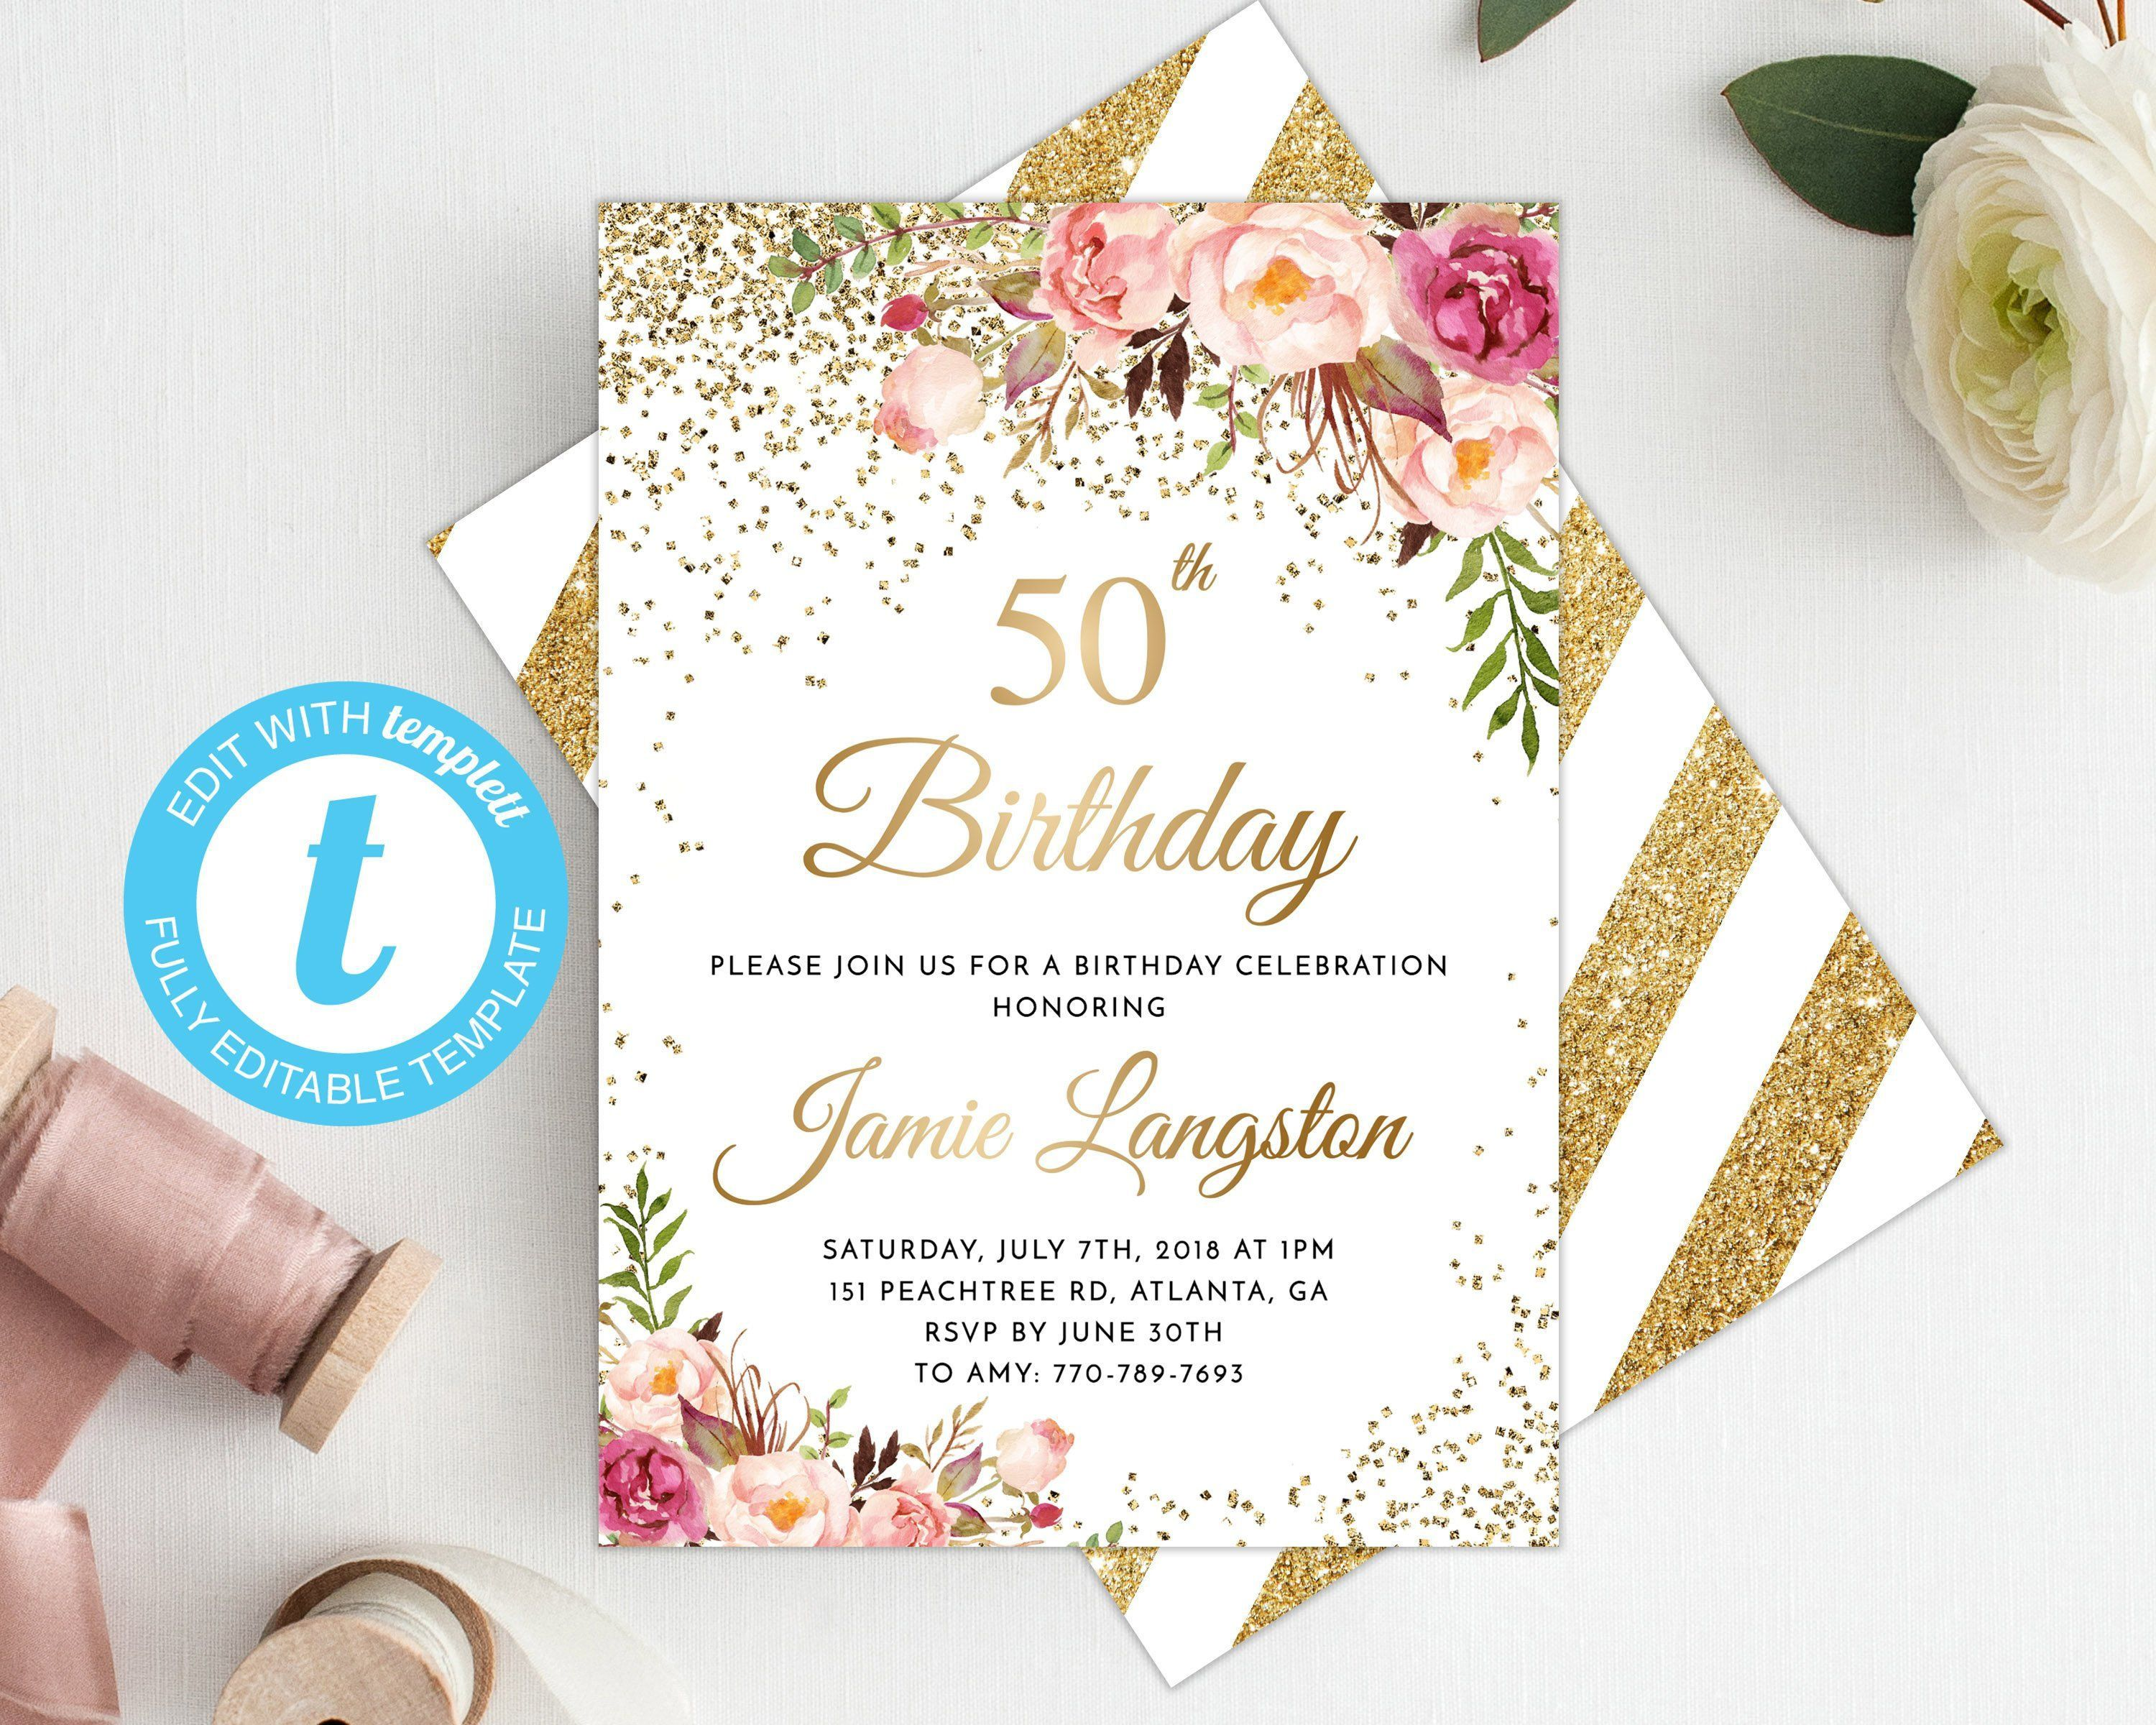 008 Astounding 50th Birthday Invitation Template Highest Clarity  For Him Microsoft Word FreeFull